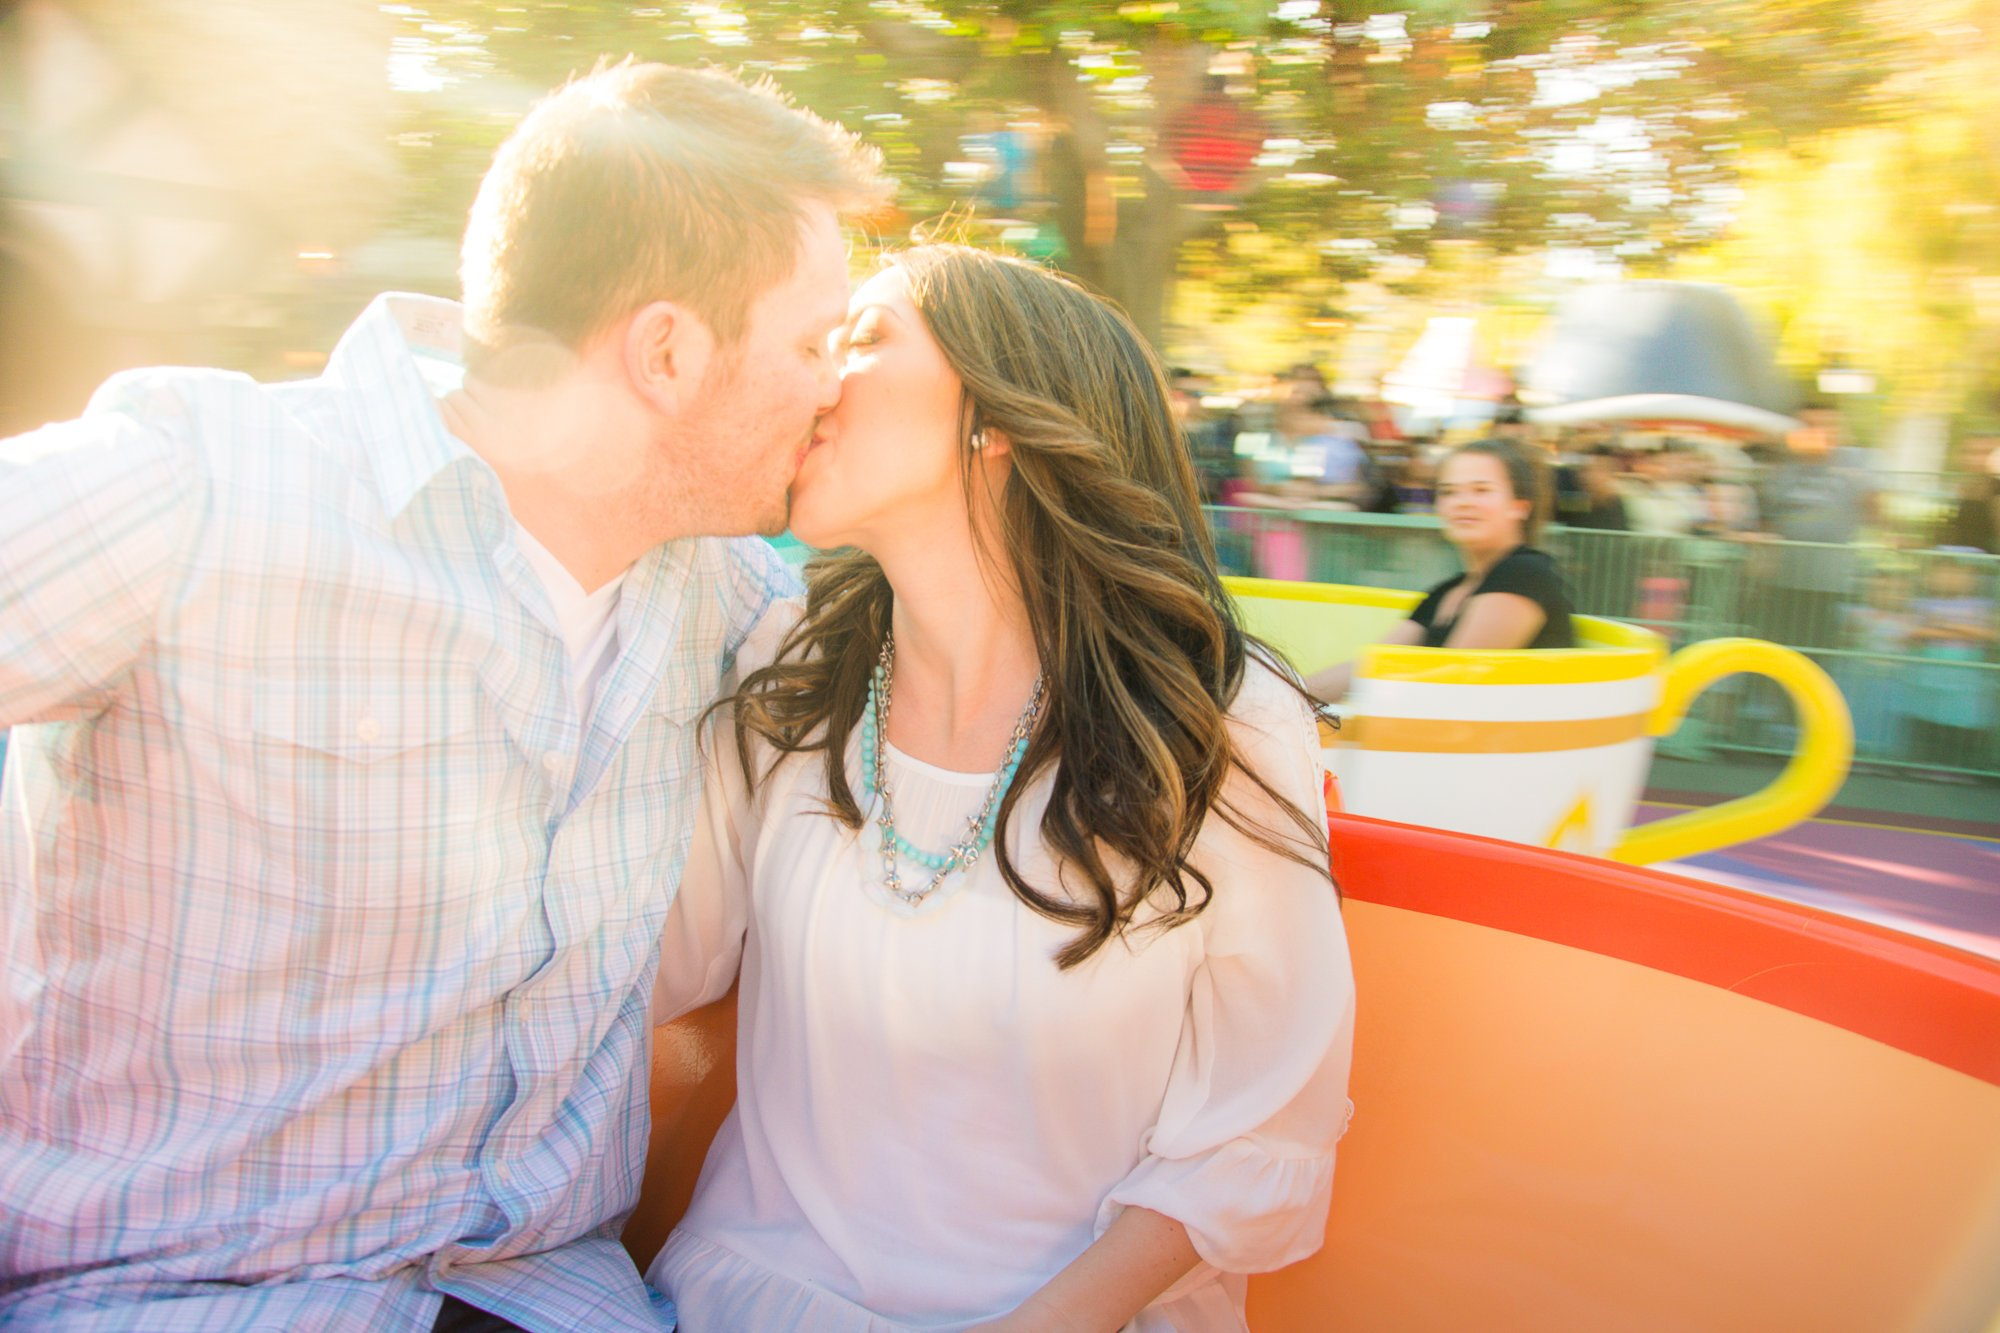 Mehlberg couple kissing on Teacup ride